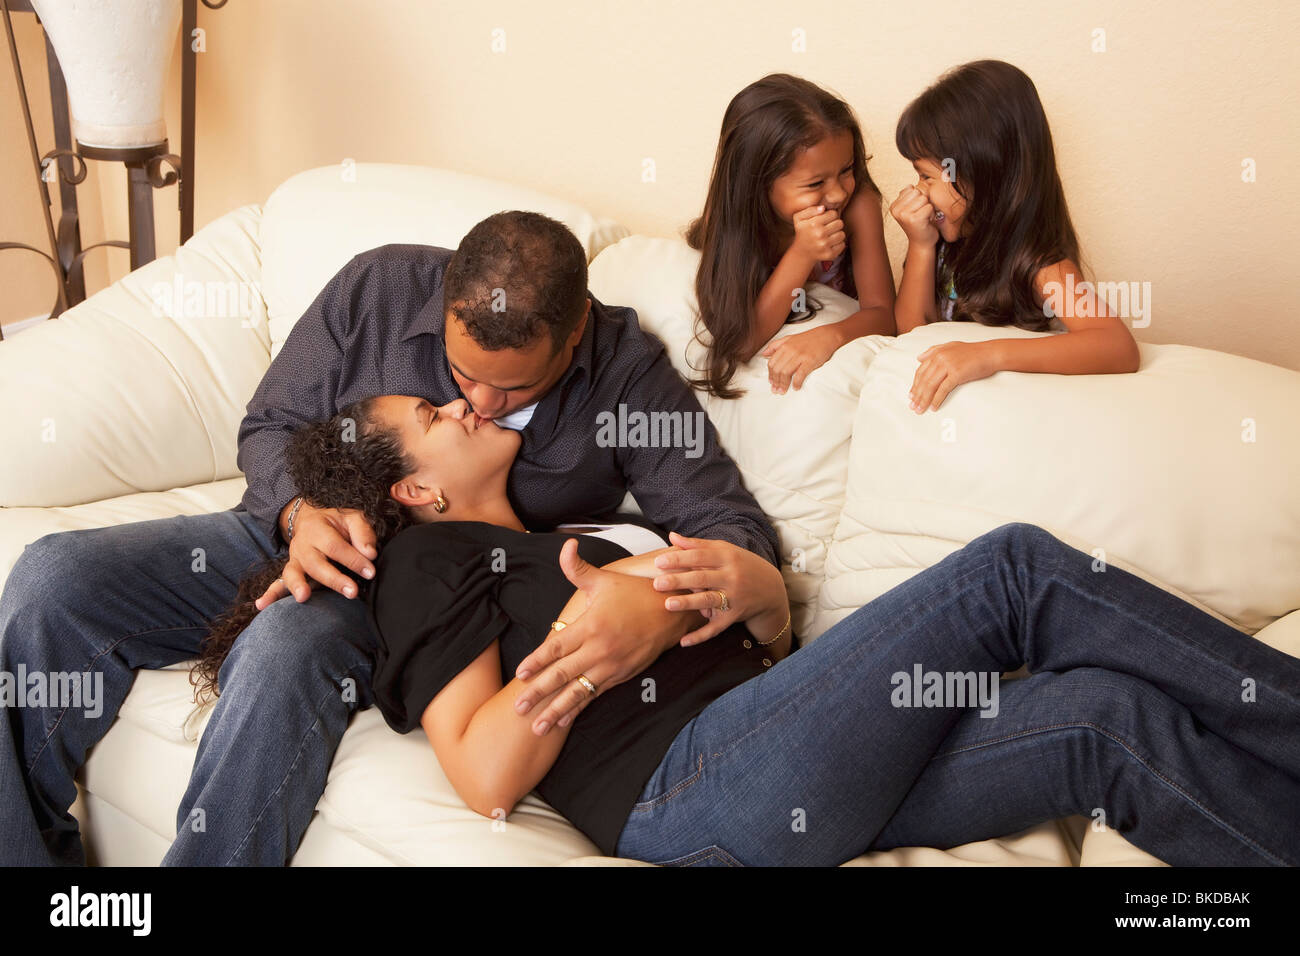 Girls Watching Their Parents Kissing - Stock Image